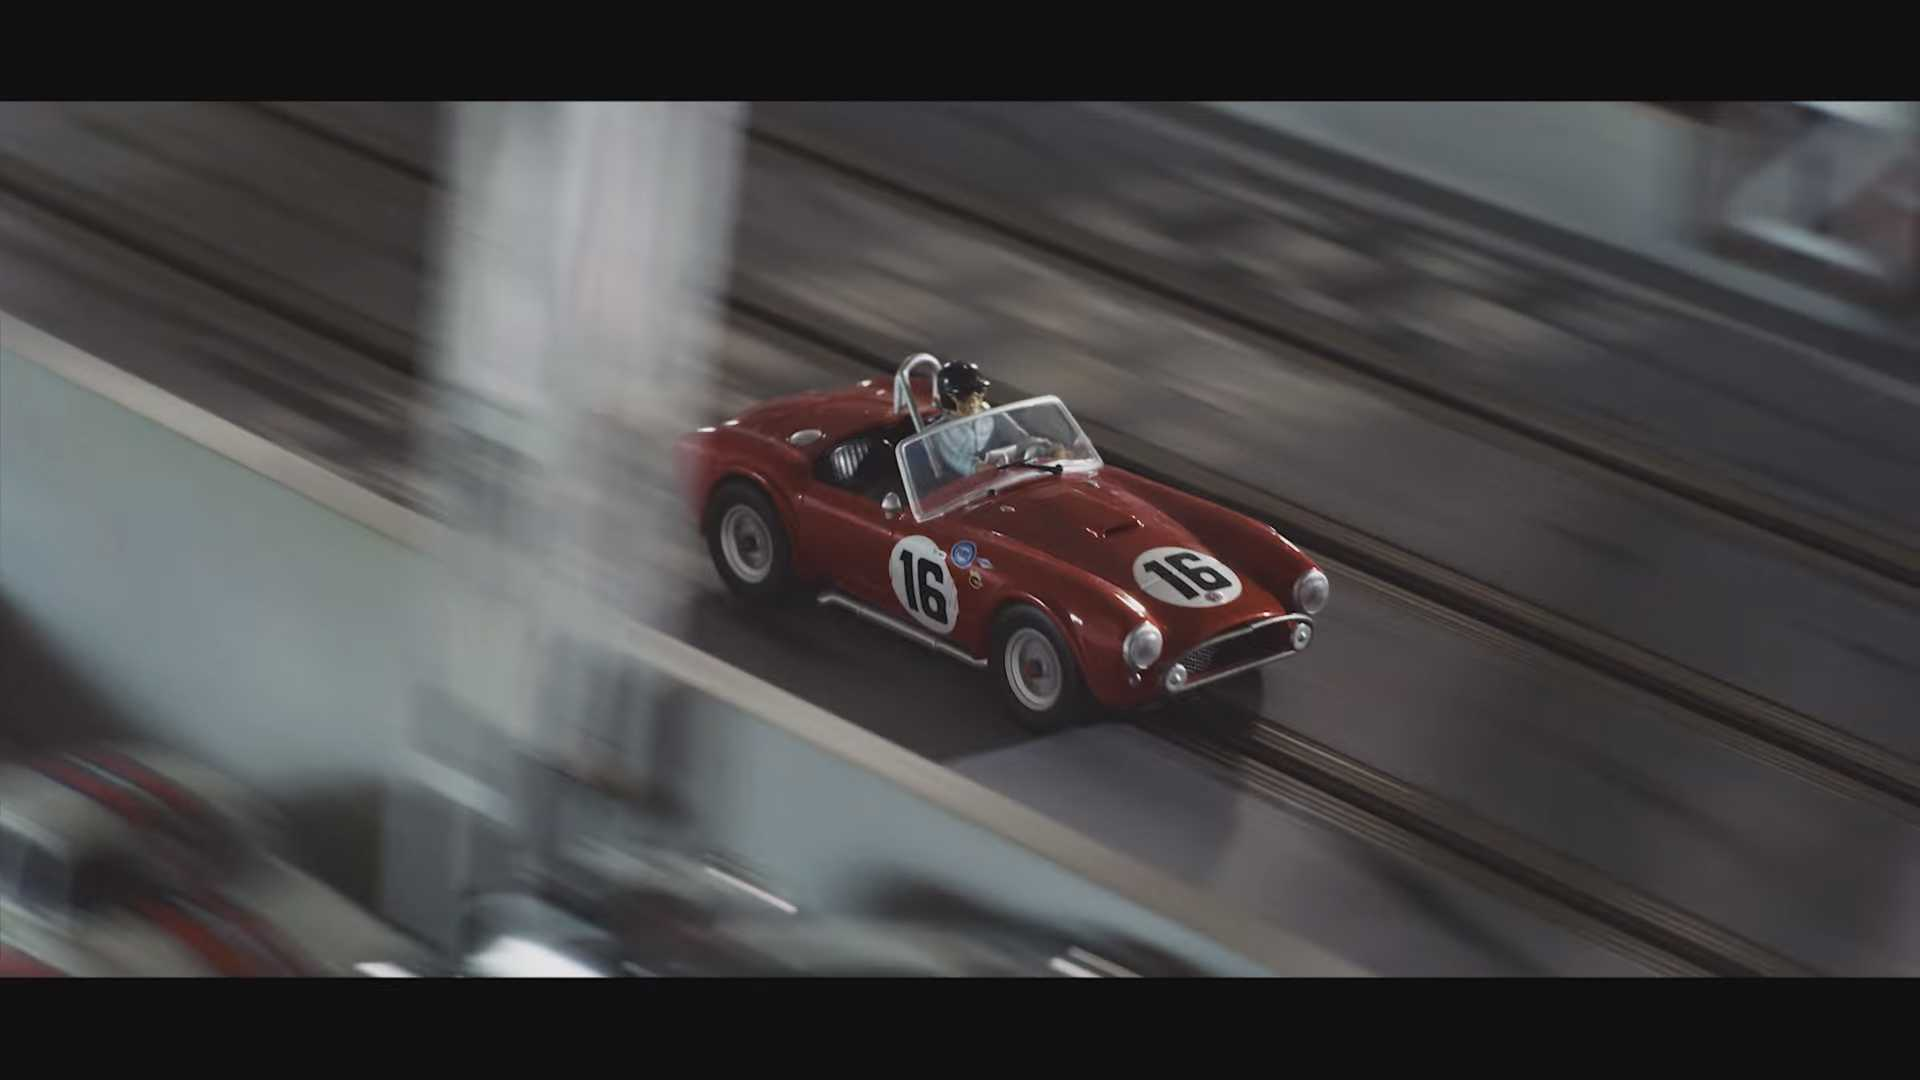 This Cool Slot Car Racing Video Makes Us Wish We Were Tiny